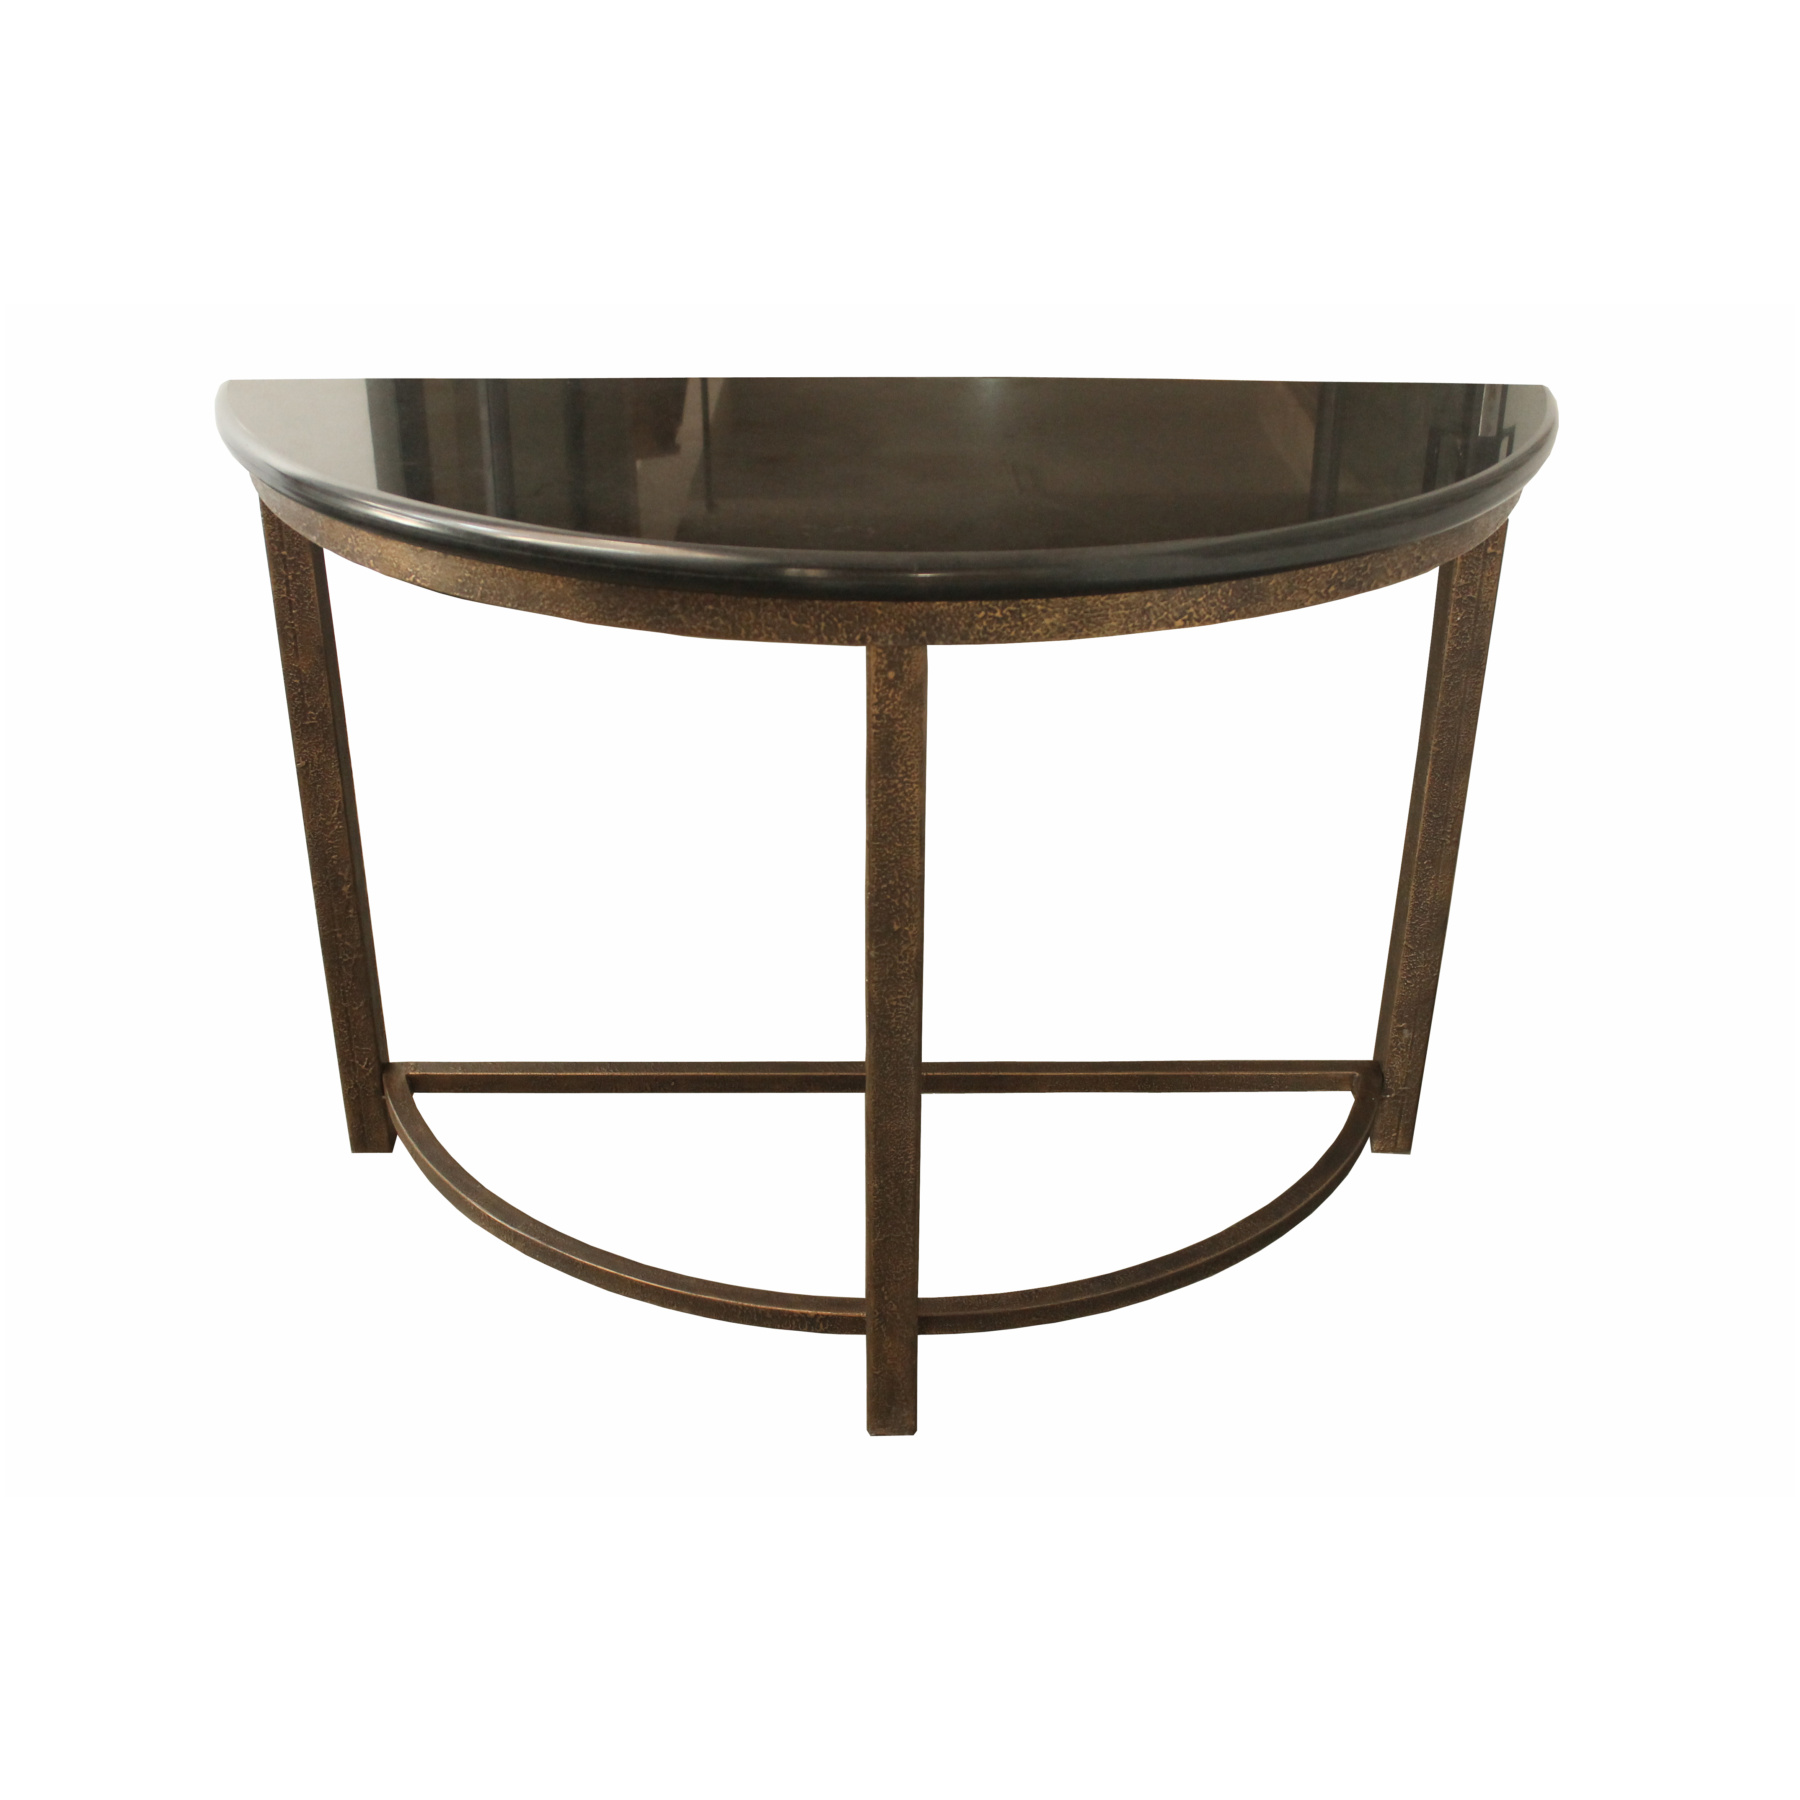 designe gallerie half round metal console accent table glass narrow circle coffee wood kitchen and chairs turquoise furniture small occasional side tables top end college dorm